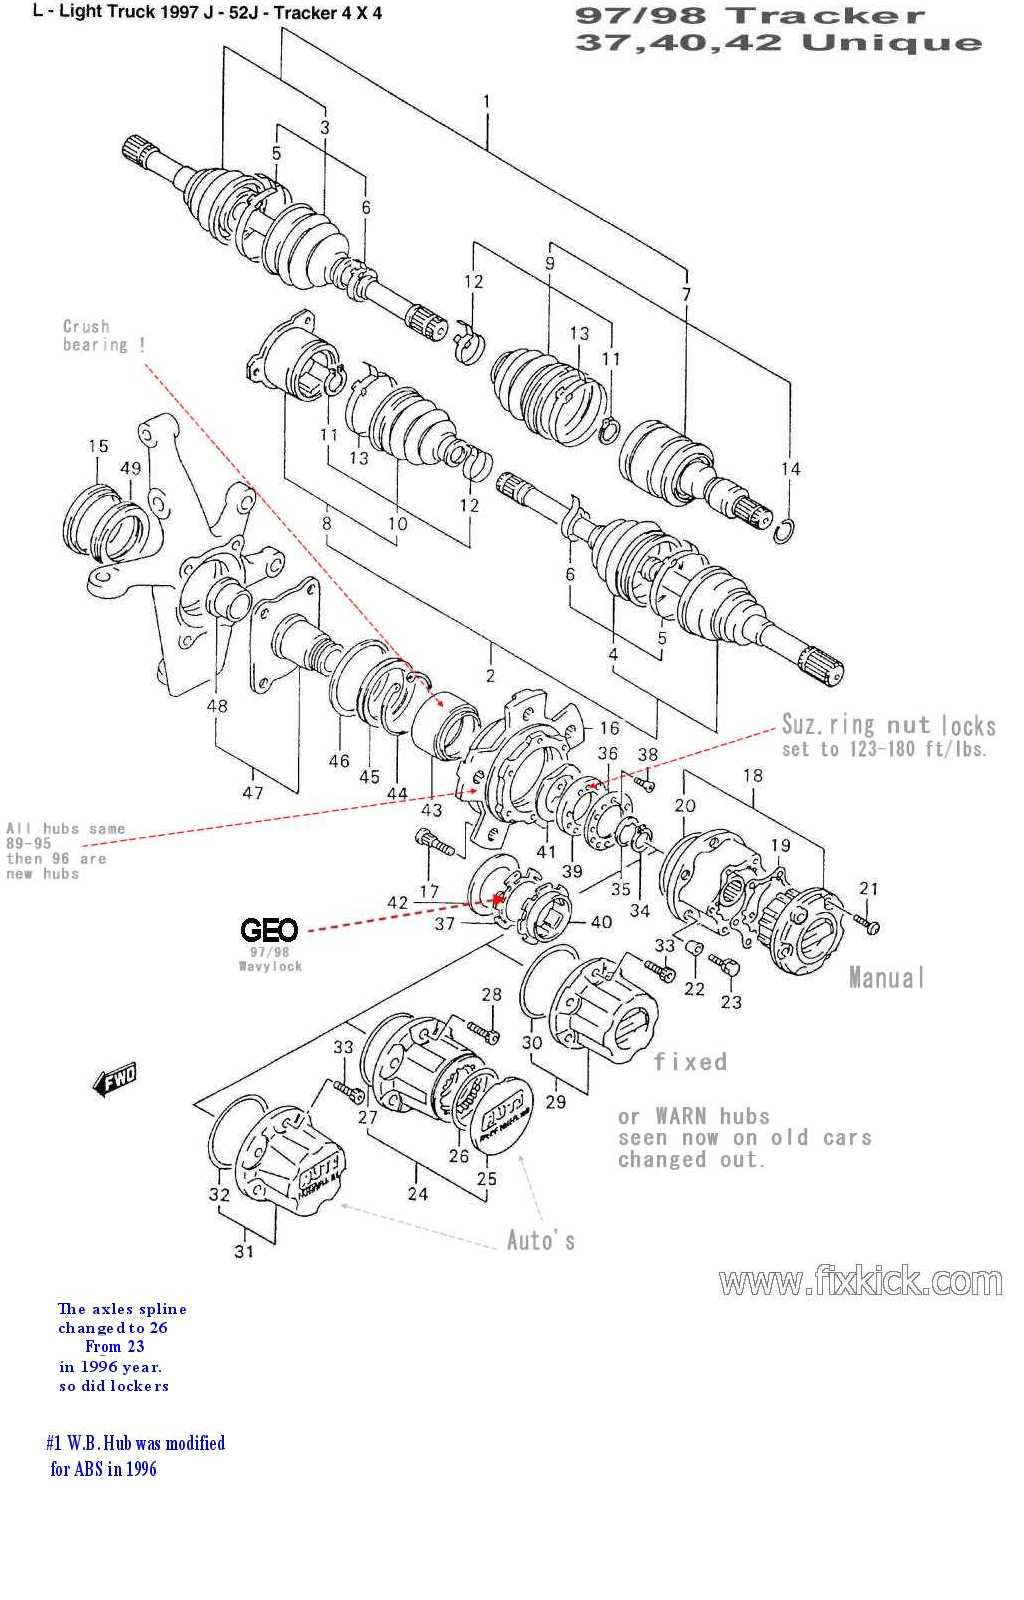 Warn Hub Schematic Wire Center Remington 1100 Diagram Gun Source By Zcl Servicing The Front Axle Locking Hubs All Rh Fixkick Com